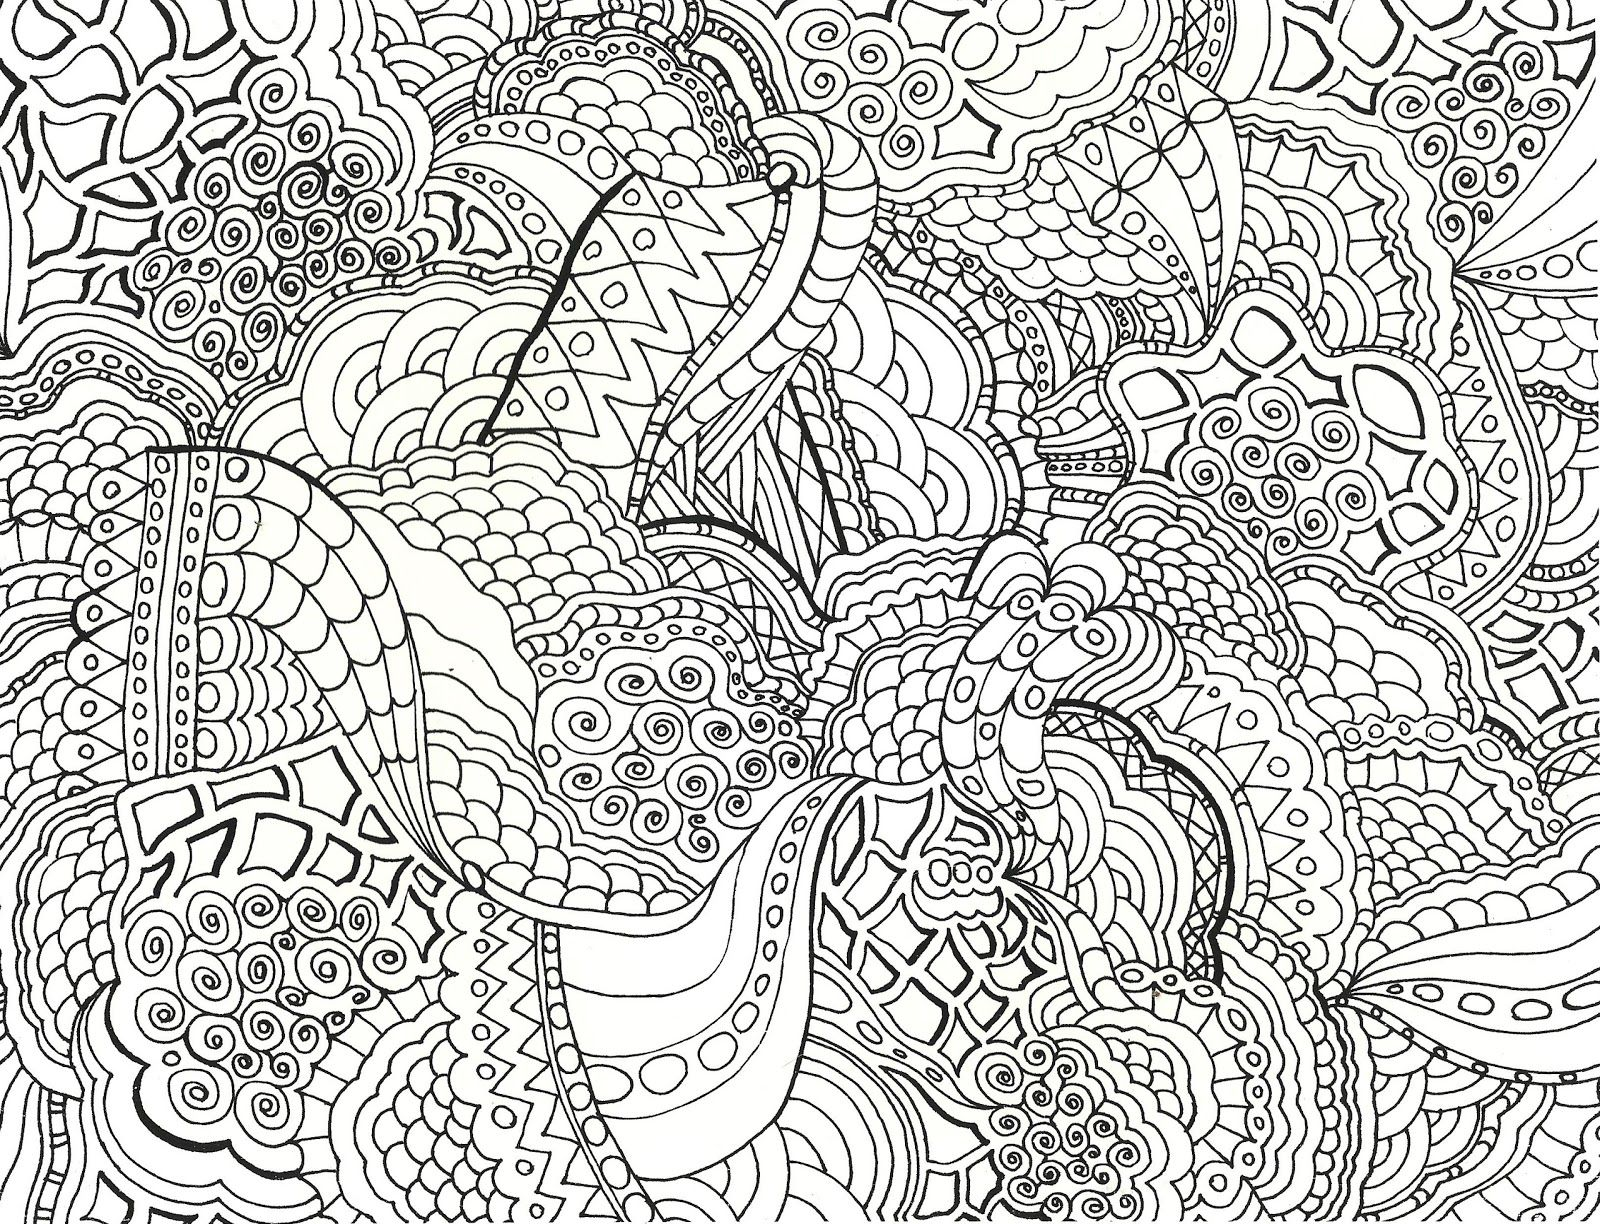 Detailed Coloring Pages for Adults coloring pages